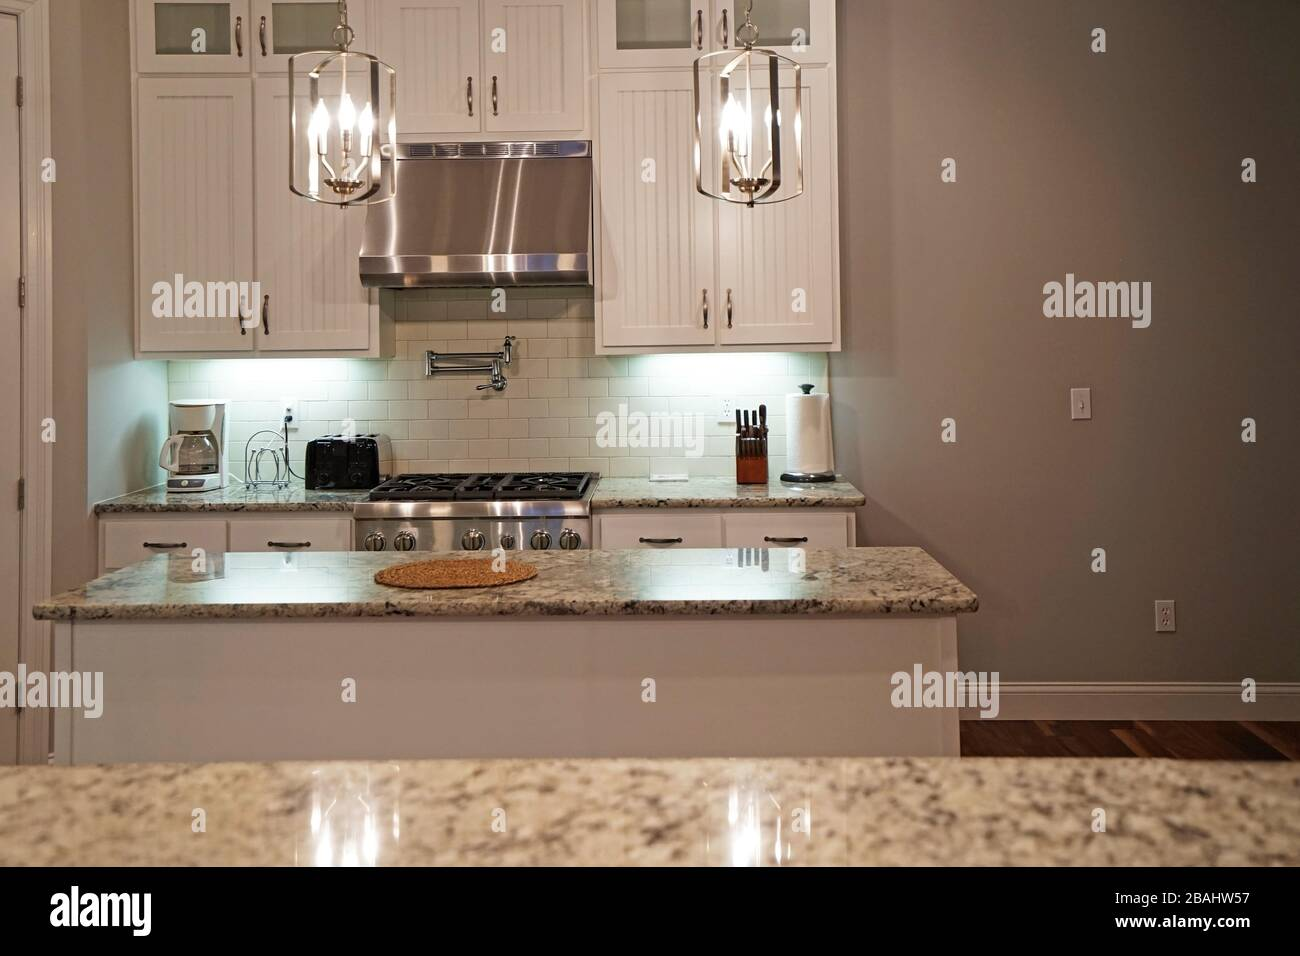 Interior Design And Kitchen Architecture Decorated With White Wooden Furniture Marbled Materials And Built In Appliances Stock Photo Alamy